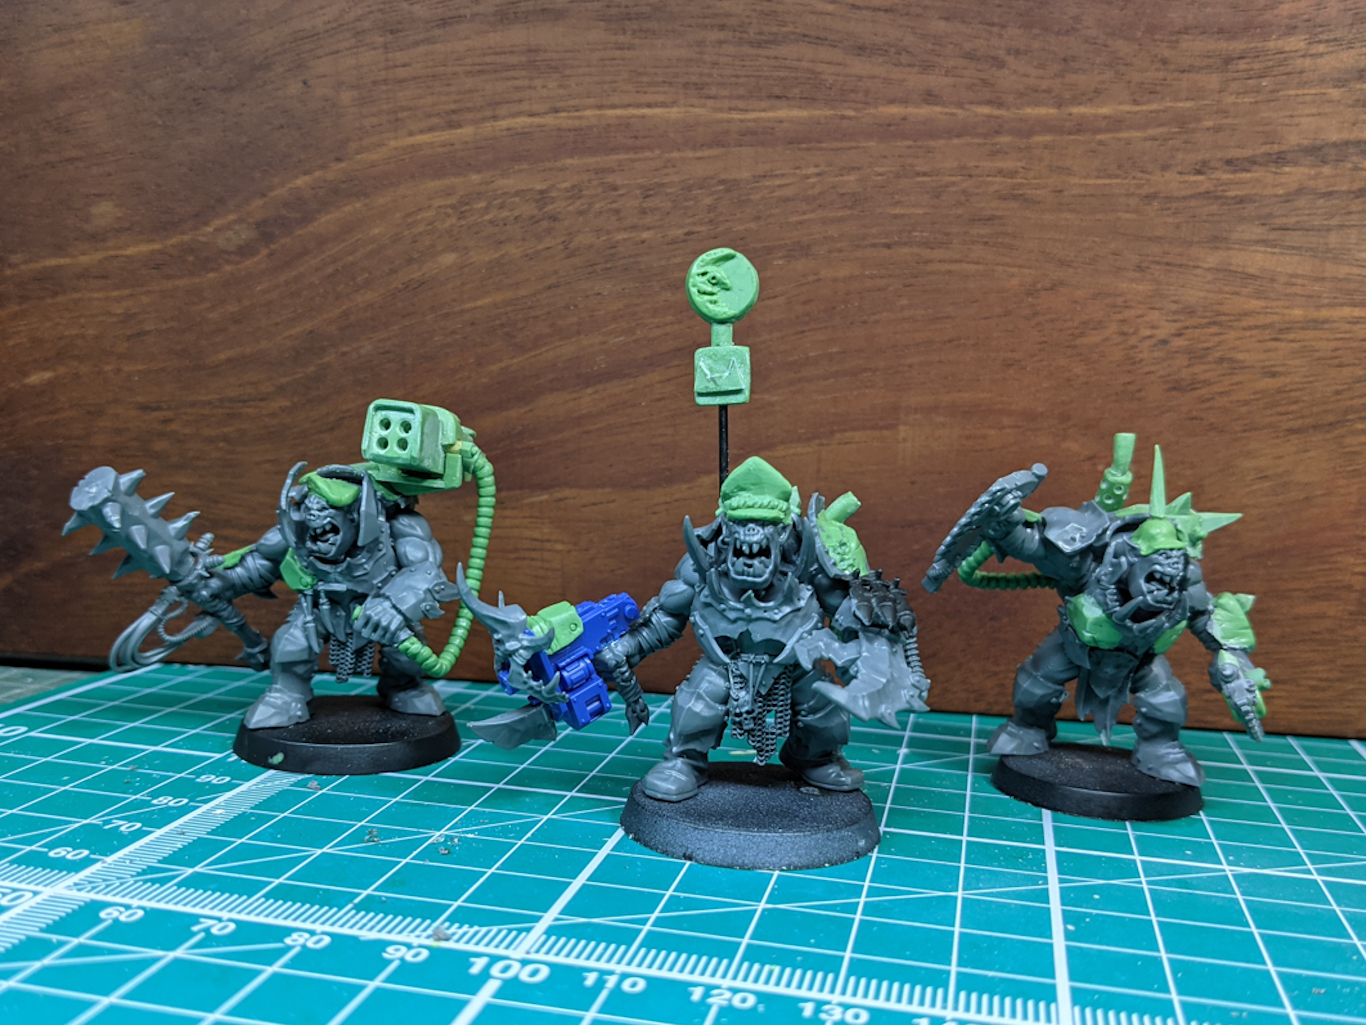 Three Ork warriors that have been extensively customised with green modelling putty, adding hats, missile launchers, and armour plating.